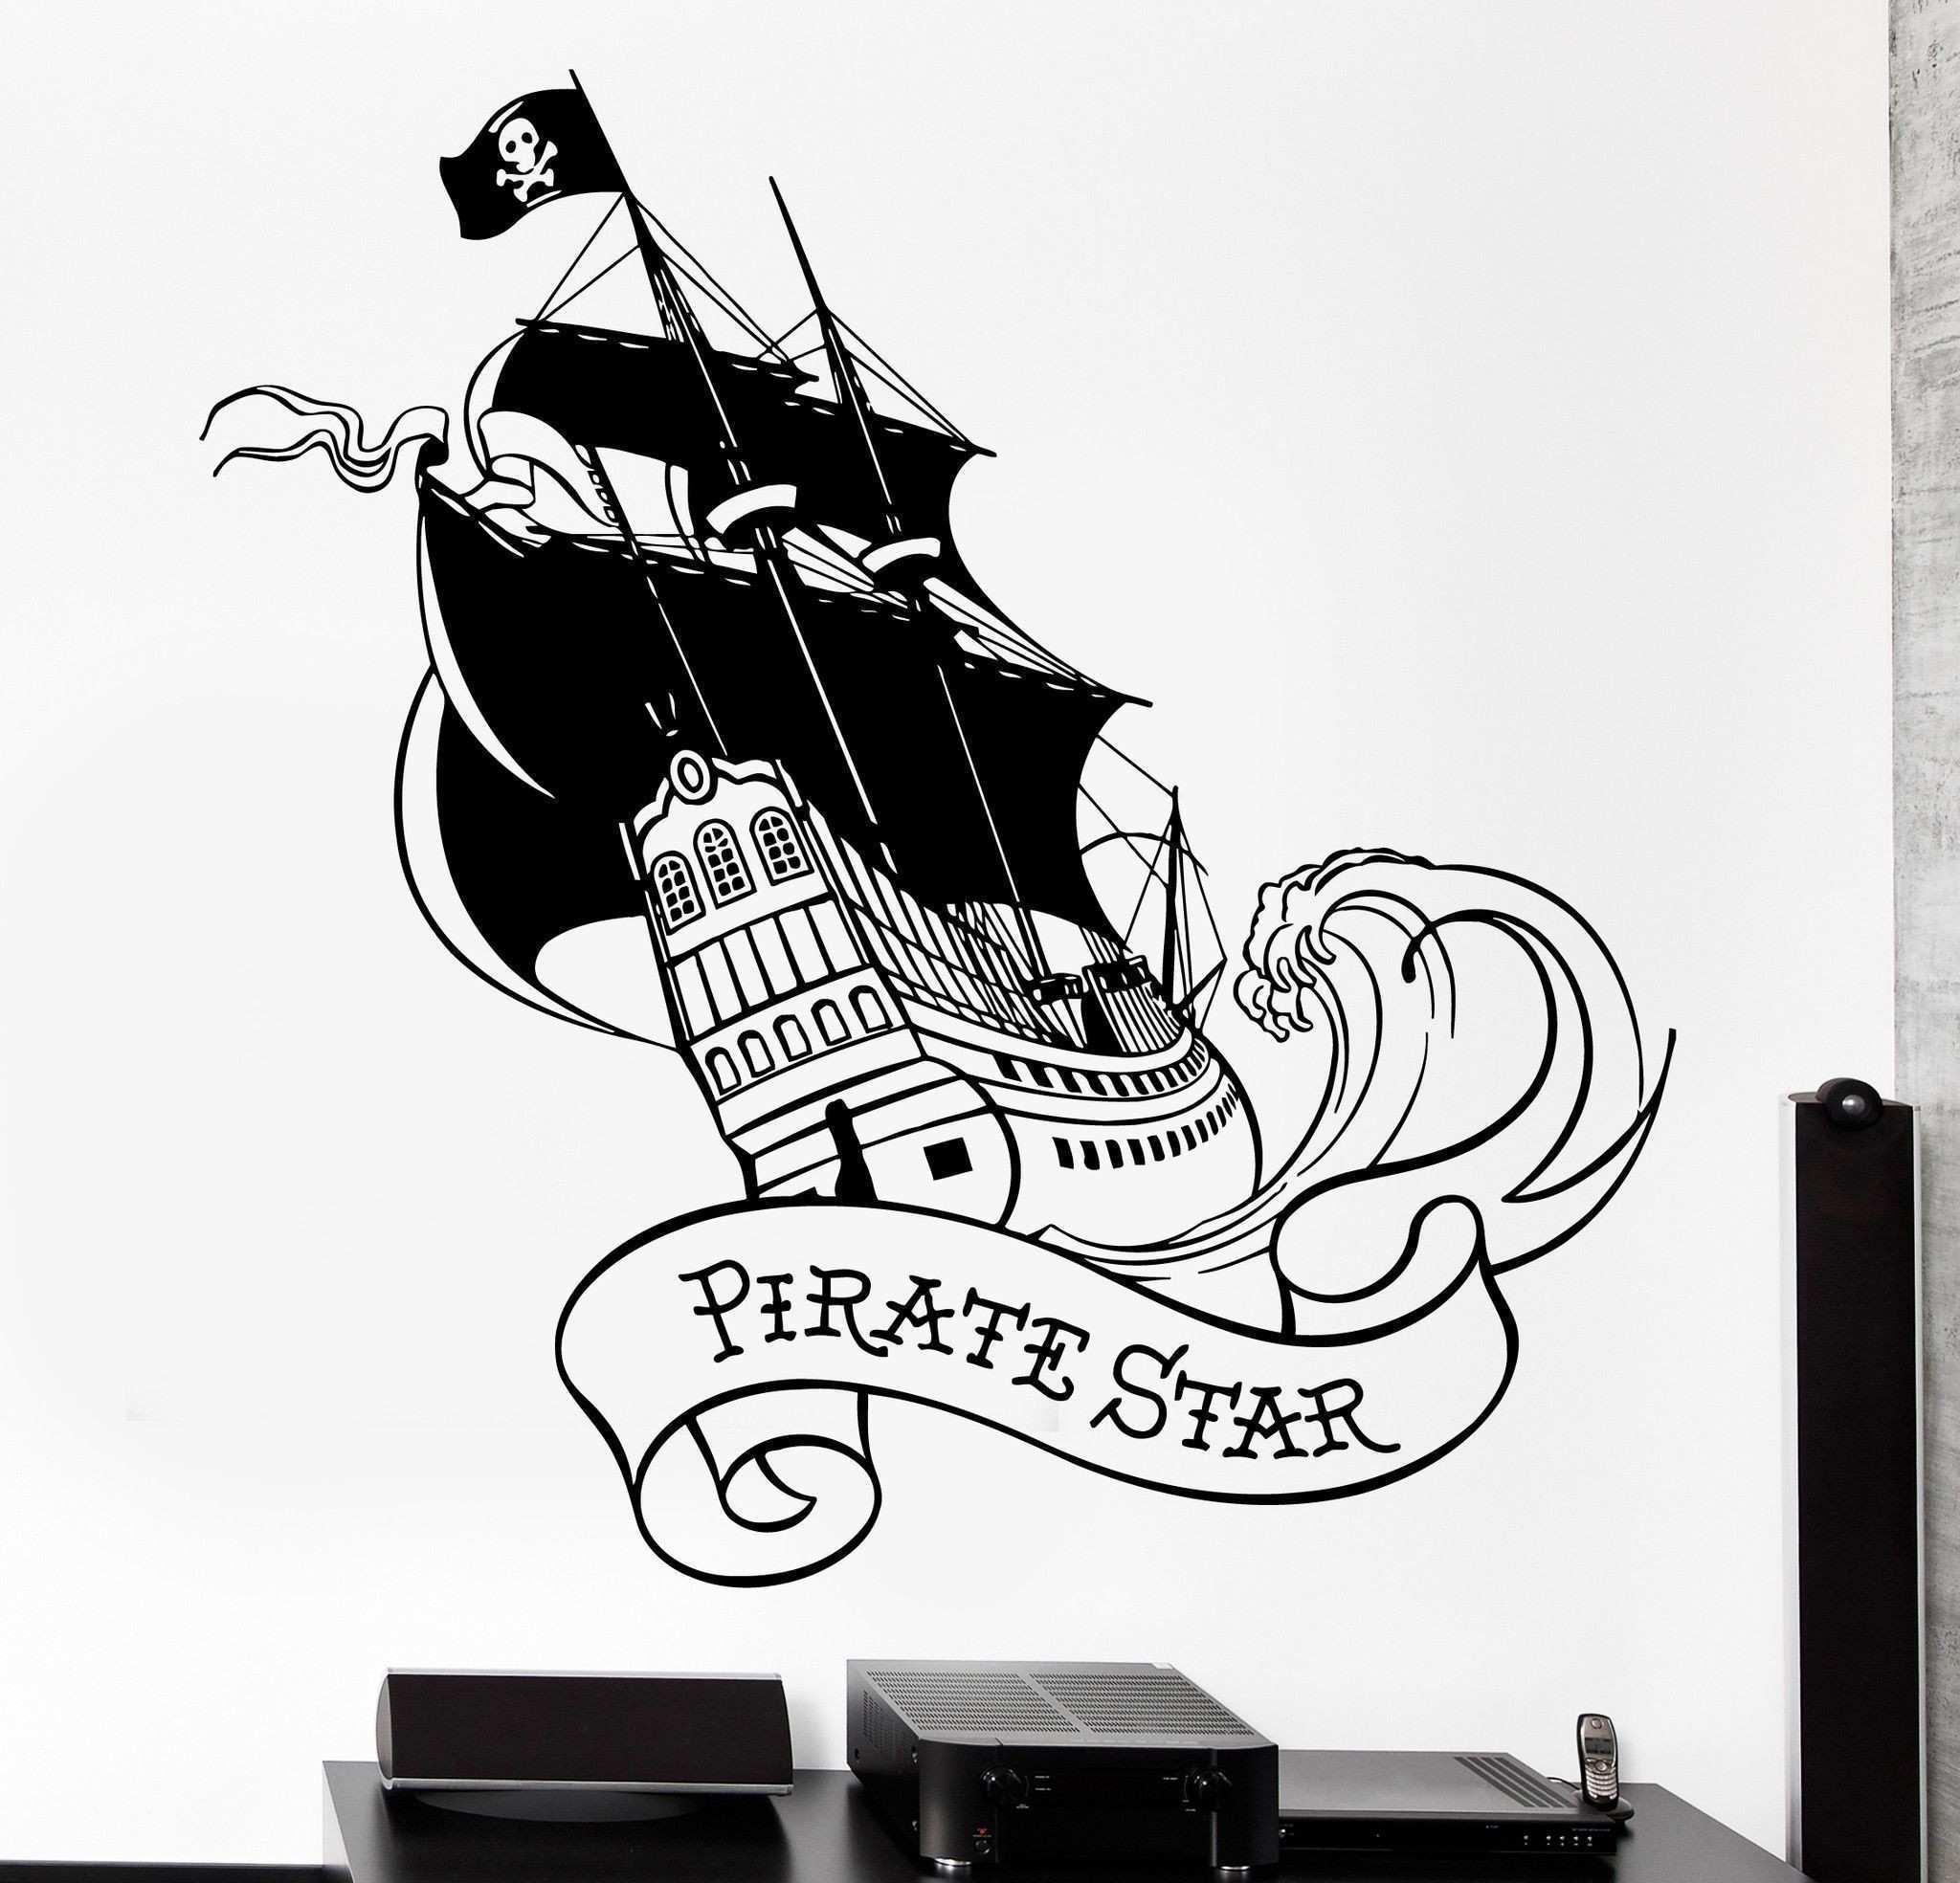 Wall Vinyl Decal Pirate Star Ship Yacht With Black Sail Ocean Home